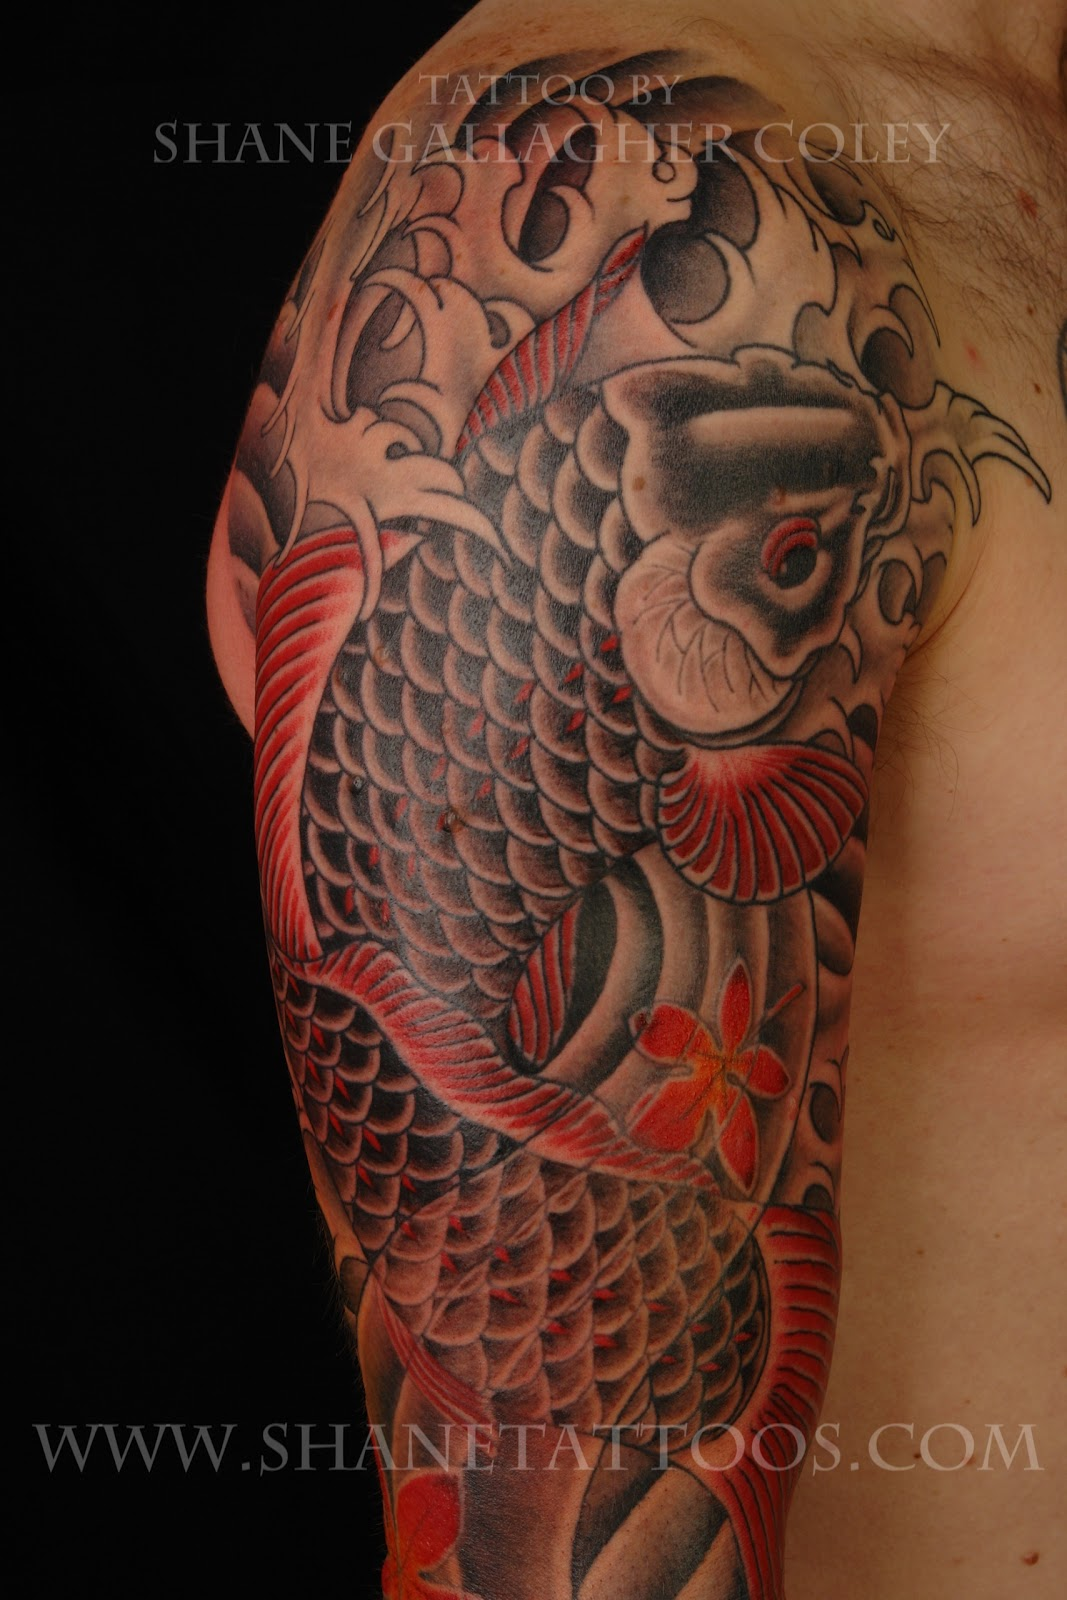 shane tattoos japanese koi tattoo